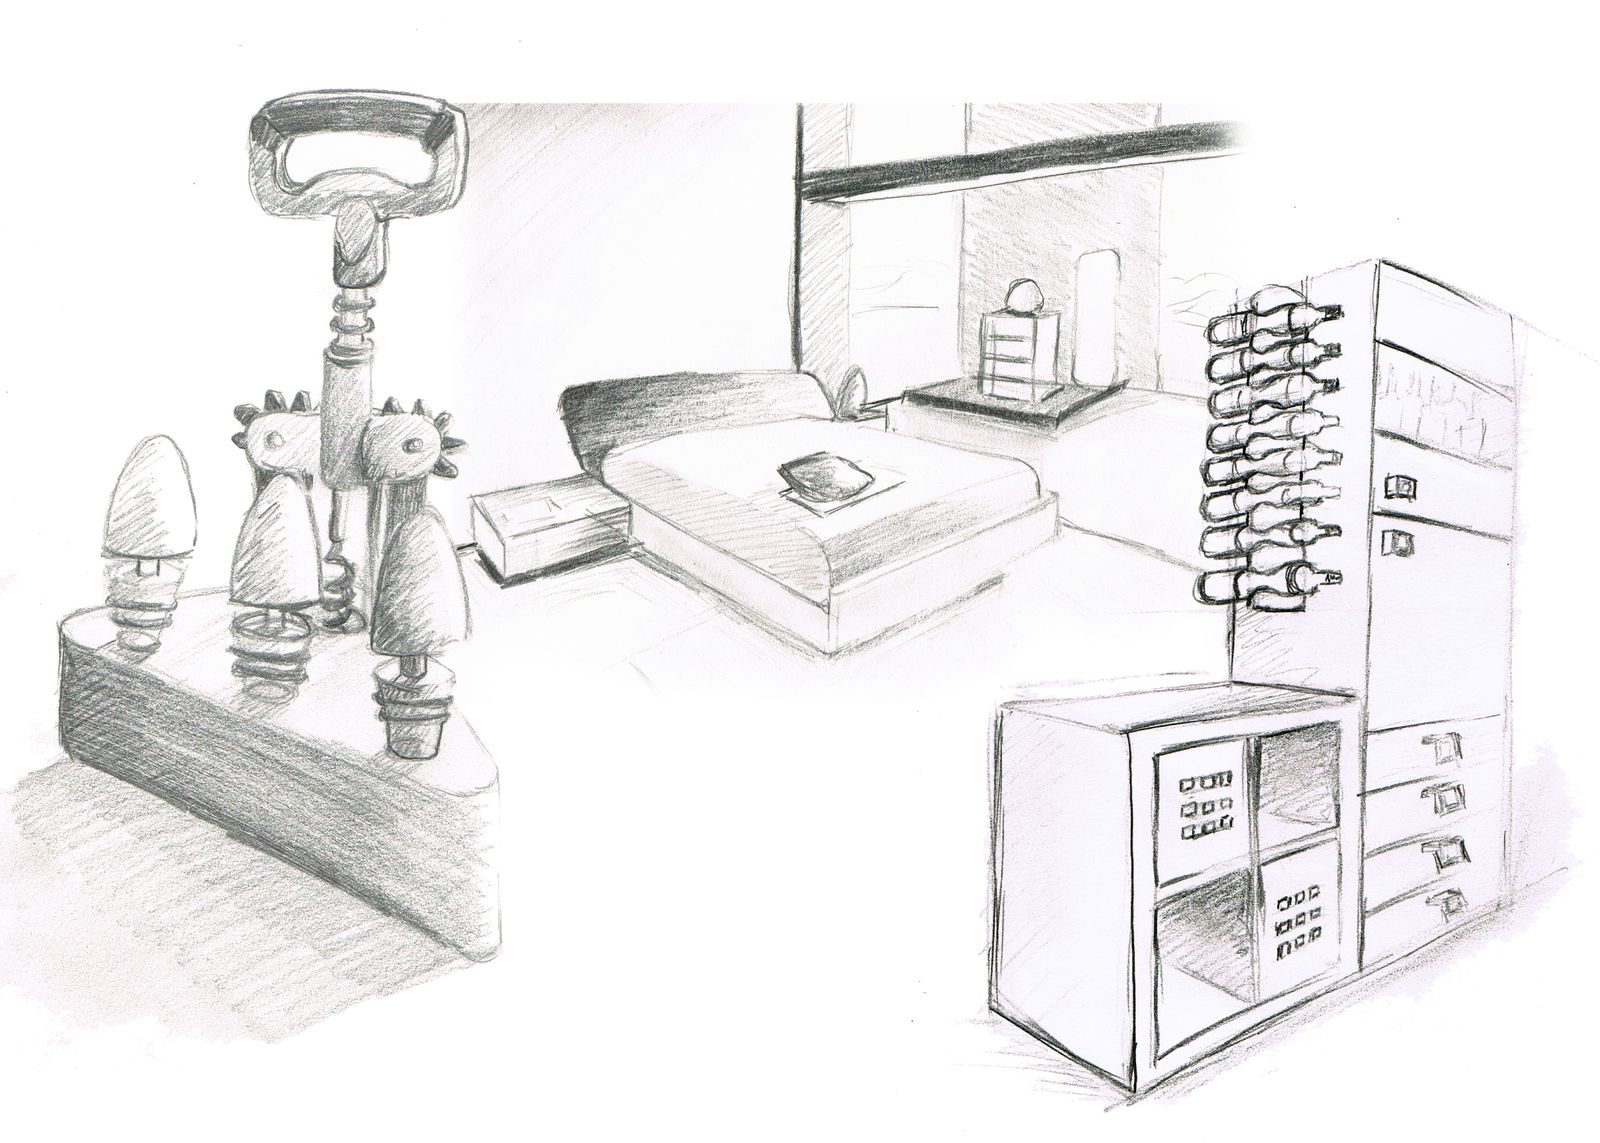 comment dessiner des objets en perspective. Black Bedroom Furniture Sets. Home Design Ideas